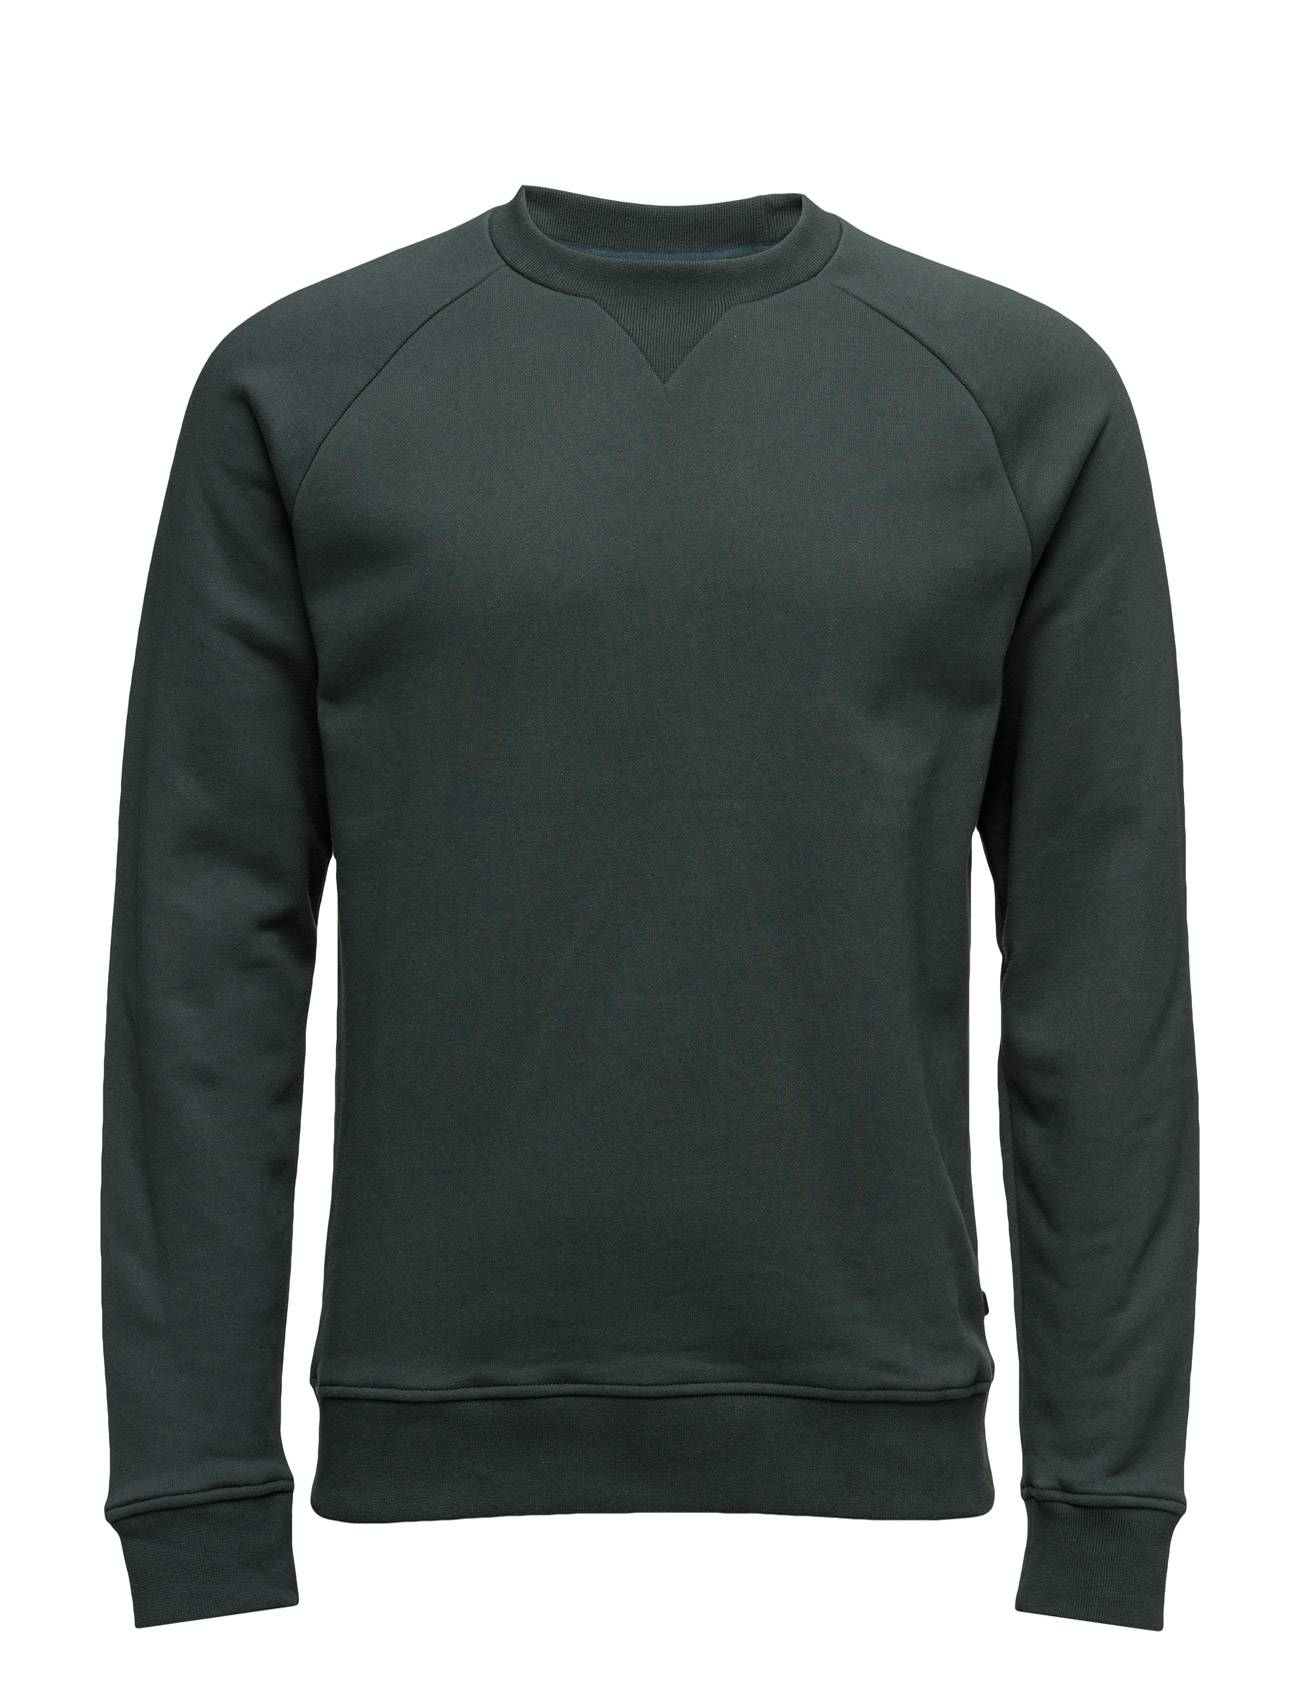 J. Lindeberg Olof Soft Sweat